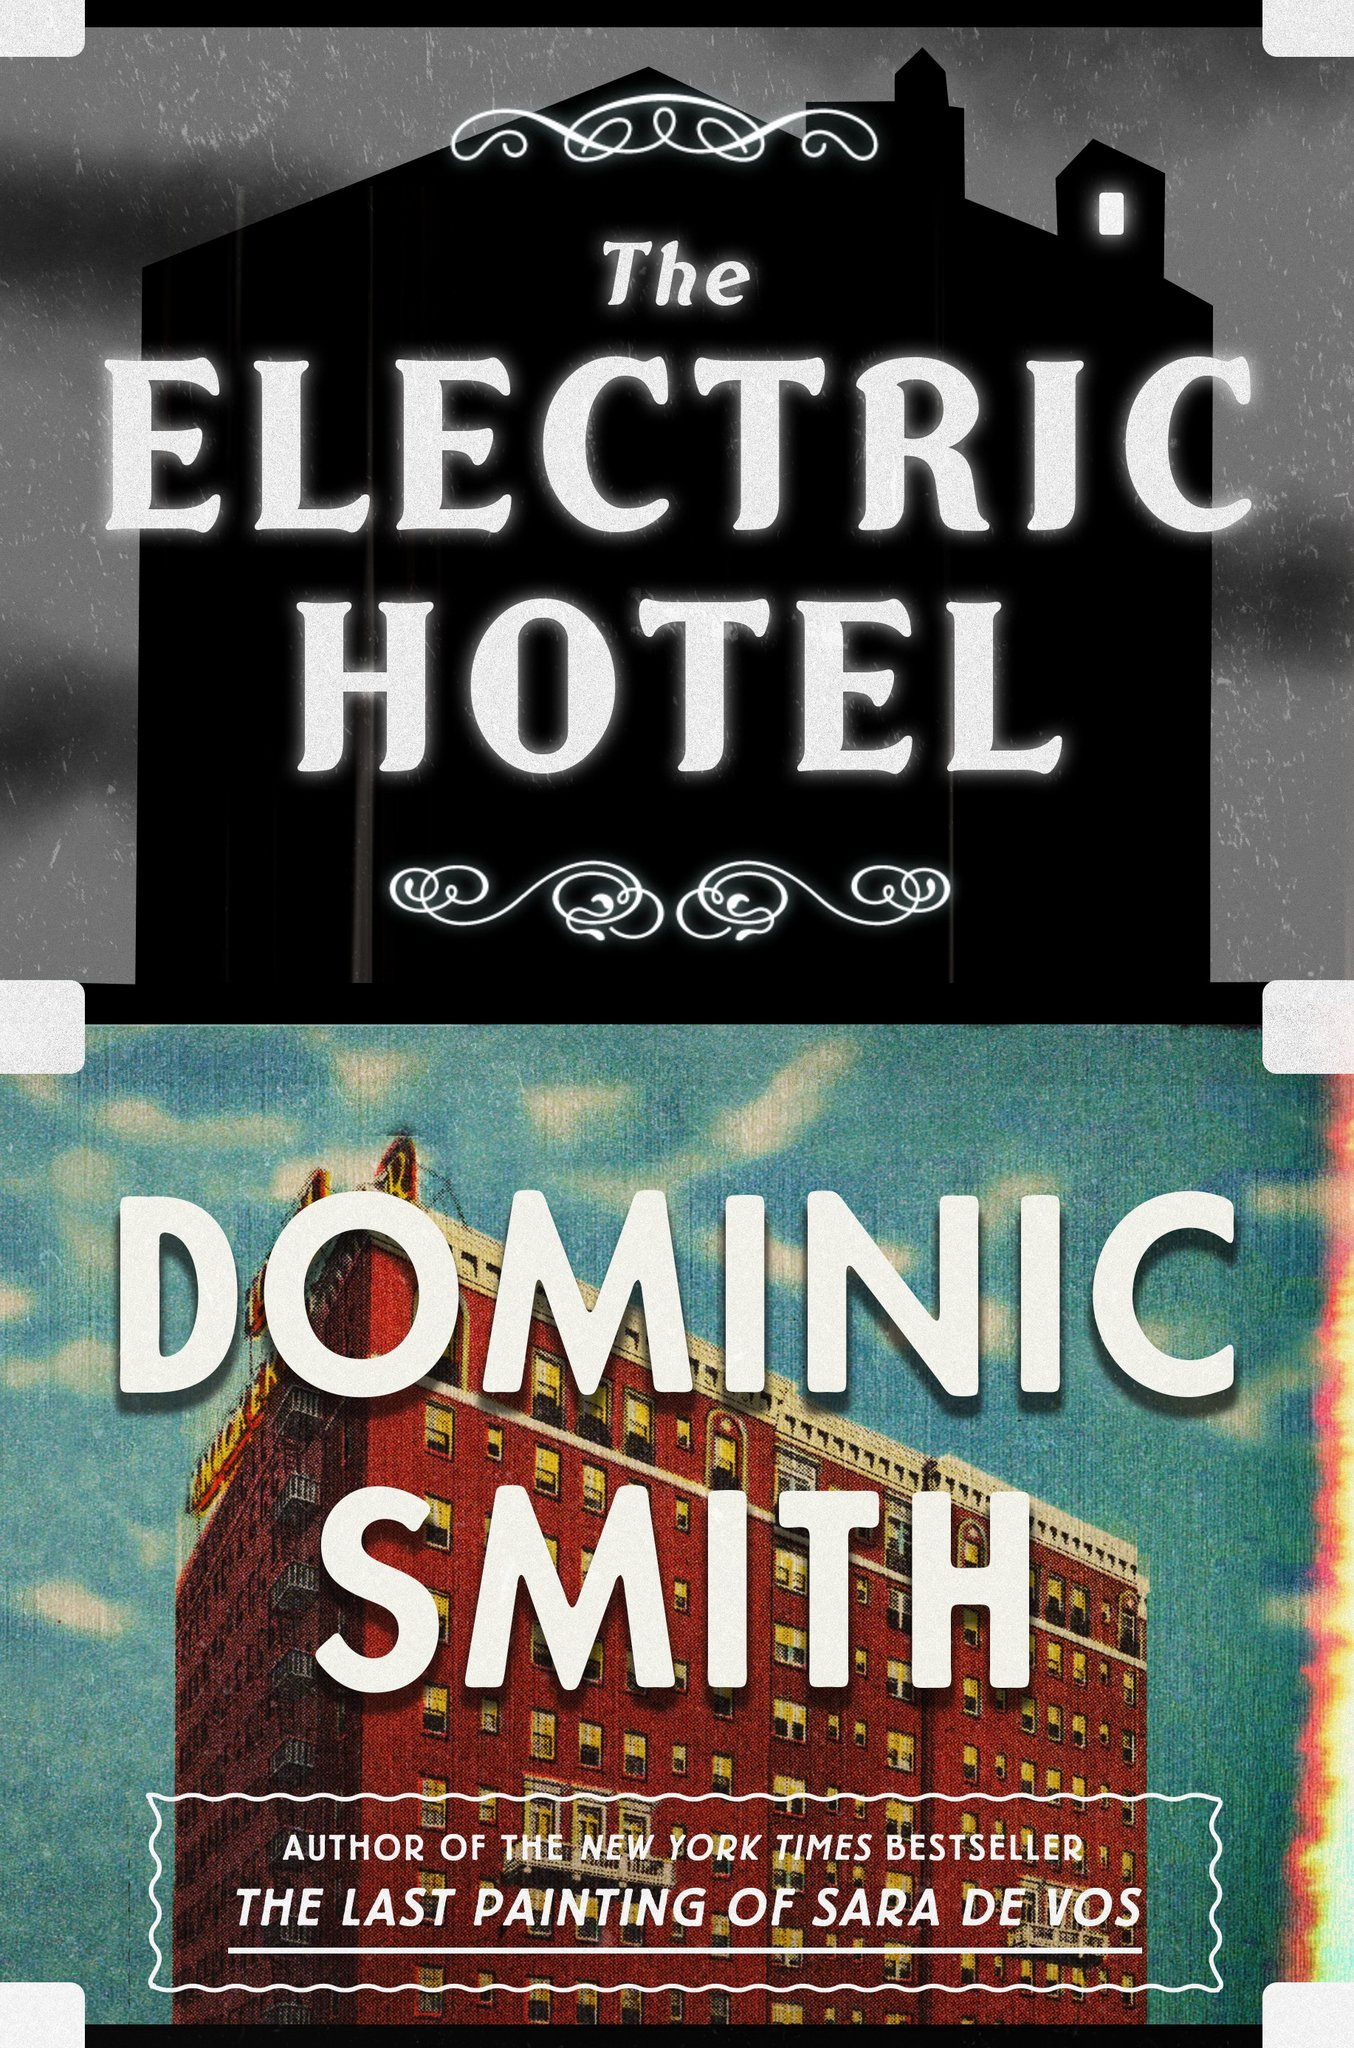 electric hotel book.jpg